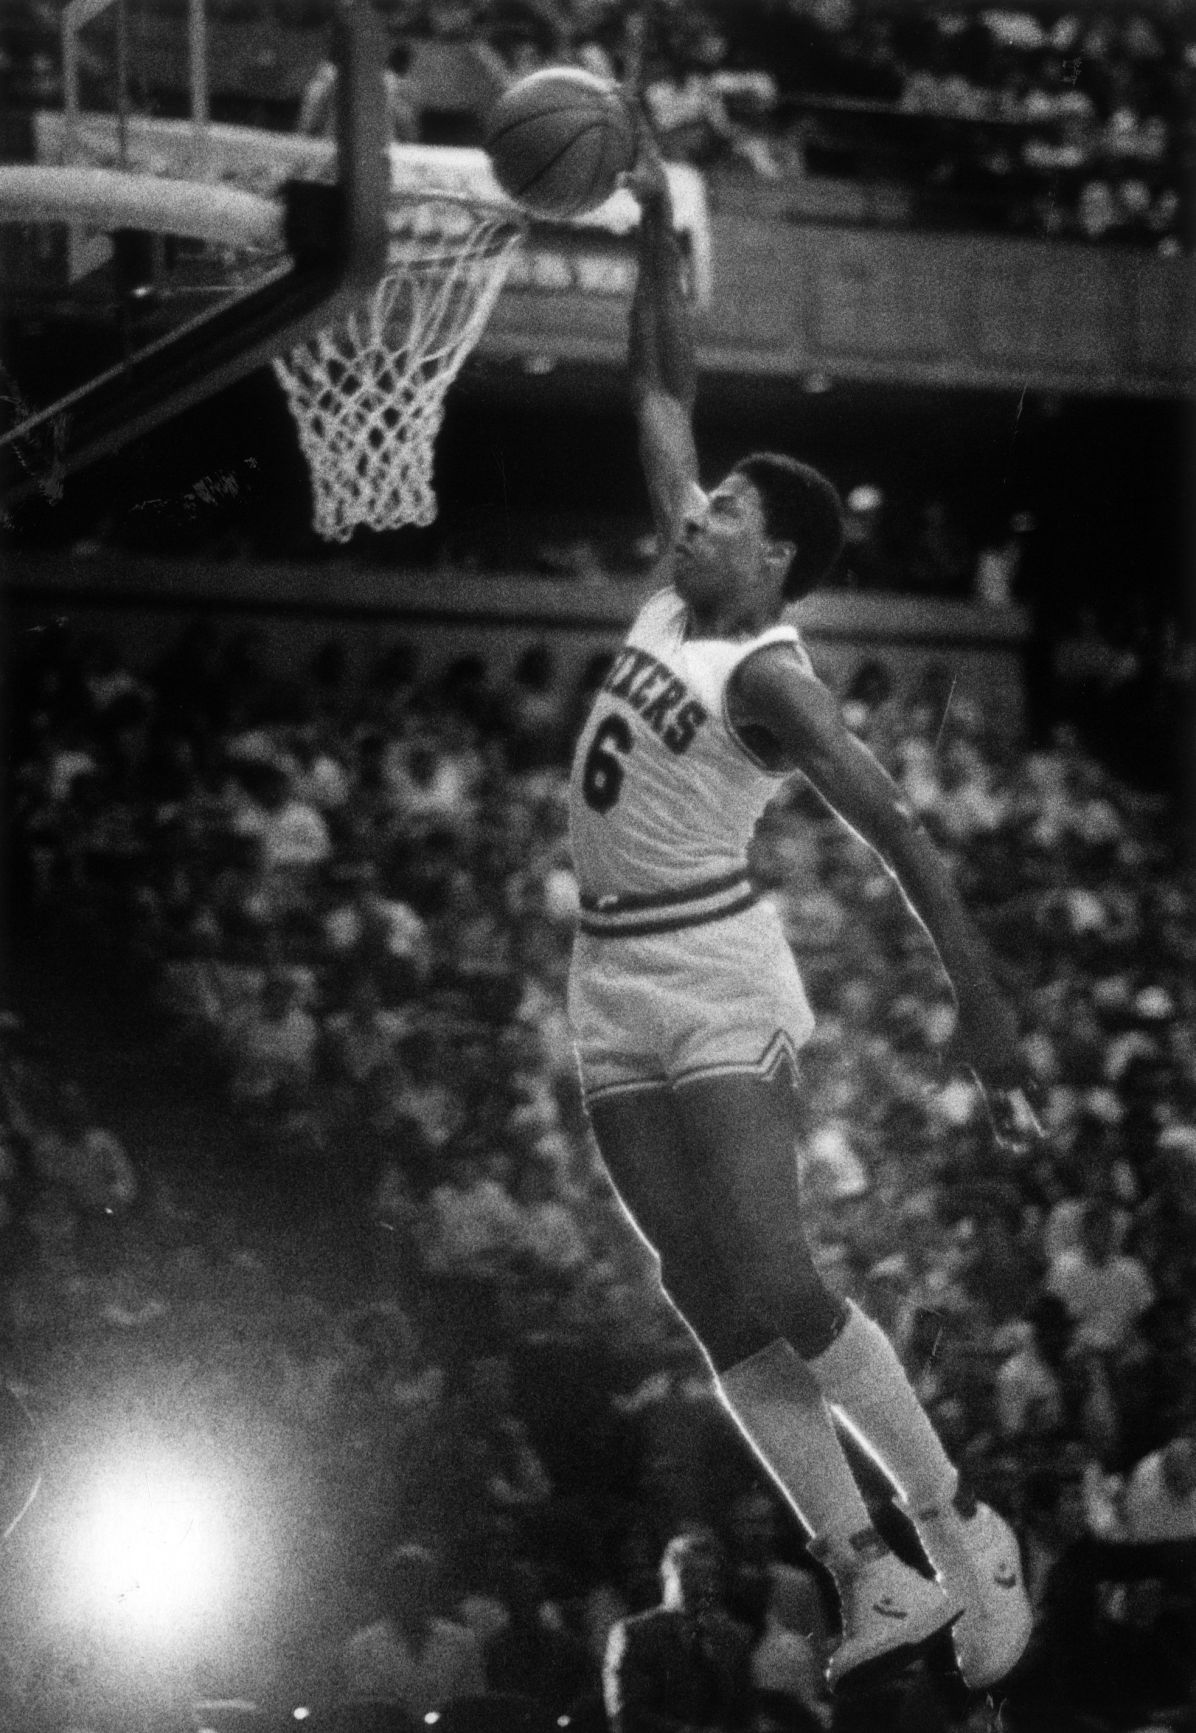 PHOTOS From the Archives Julius Erving